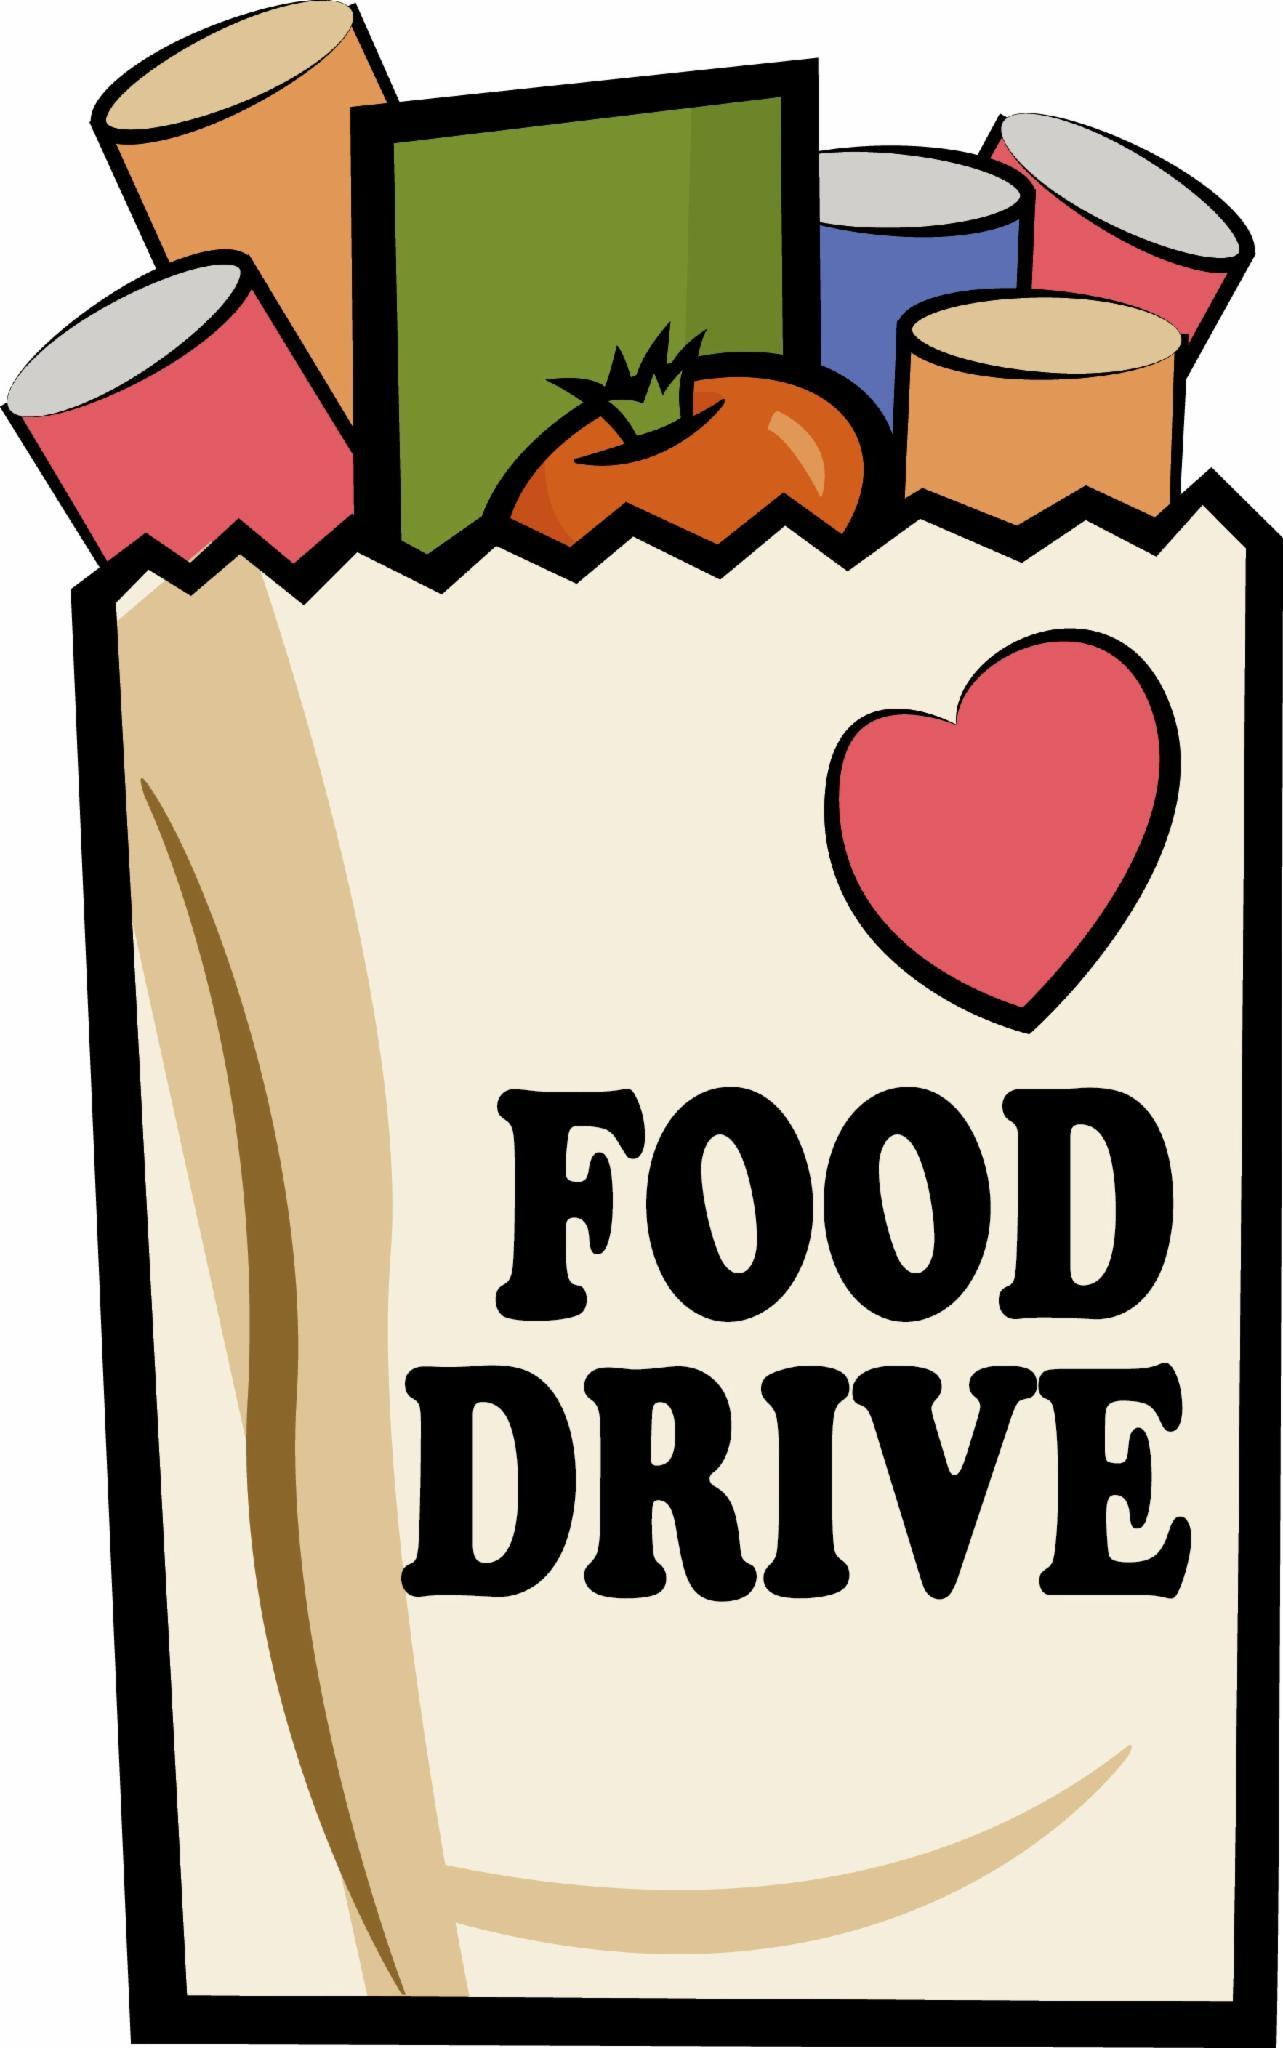 There is a food drive at your school. Do you participate?